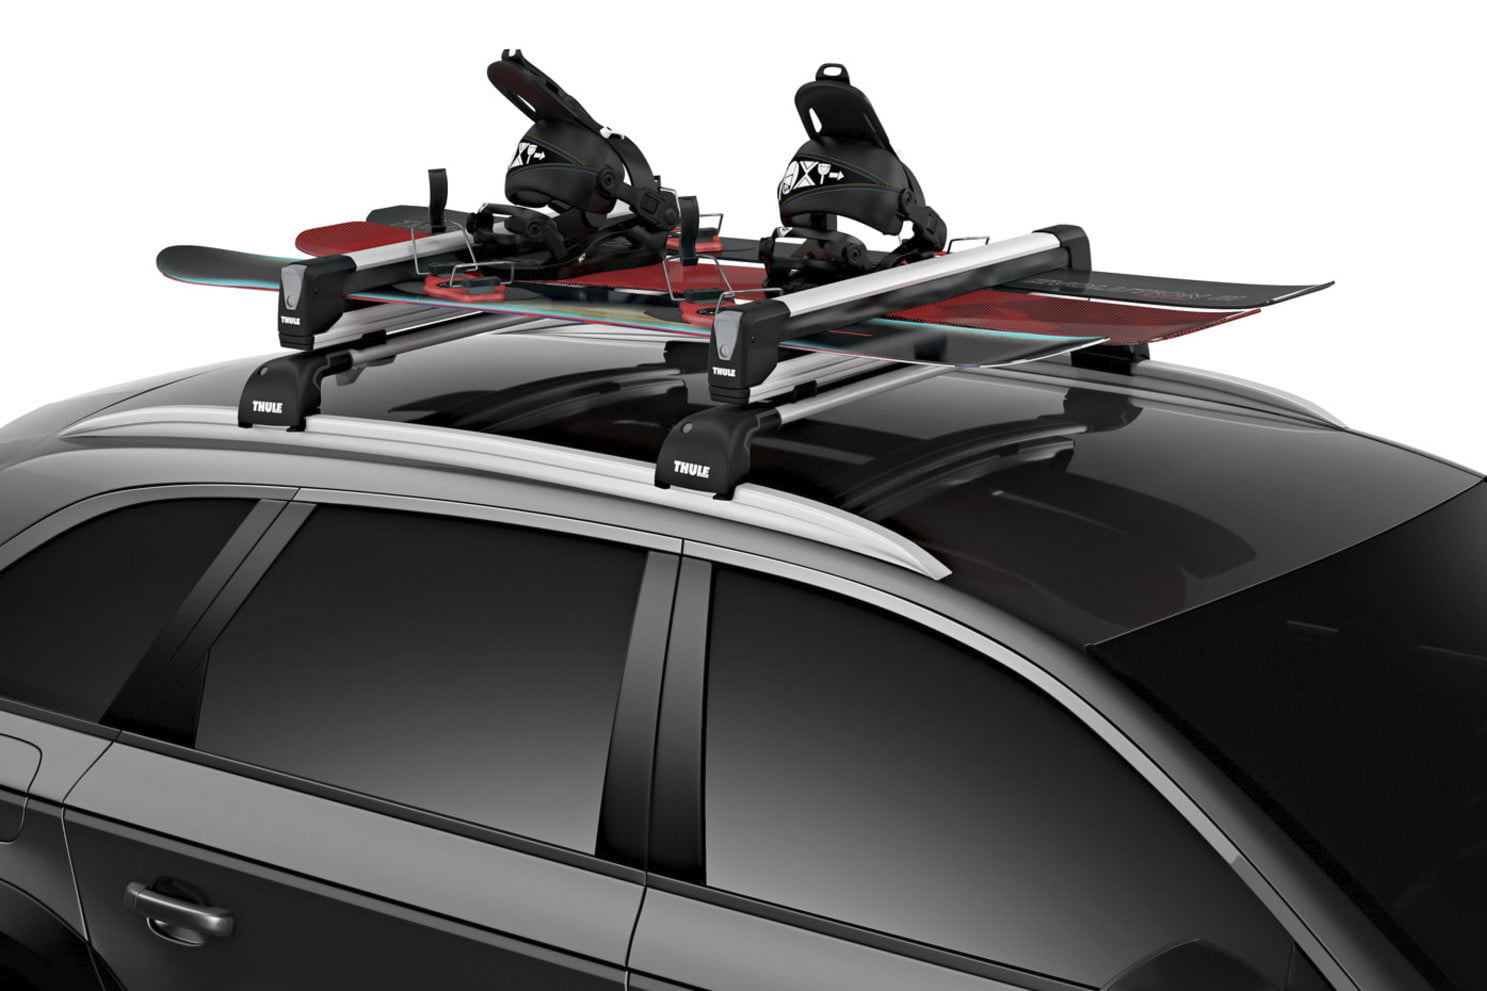 The Best Ski Racks And Snowboard Carriers Digital Trends